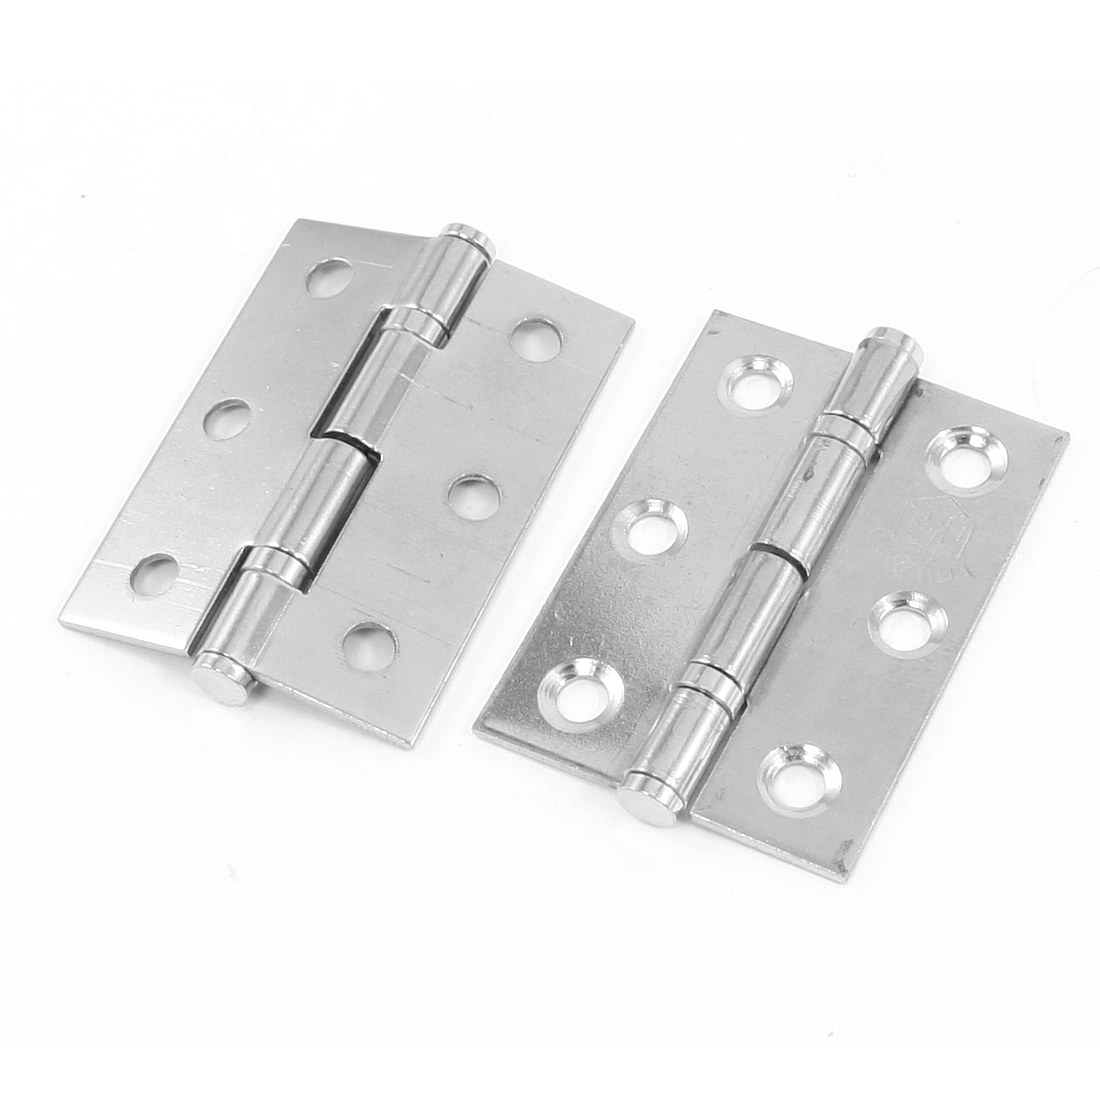 2pcs Stainless Steel Wooden Boxes Crates Door Gate Butt Hinges